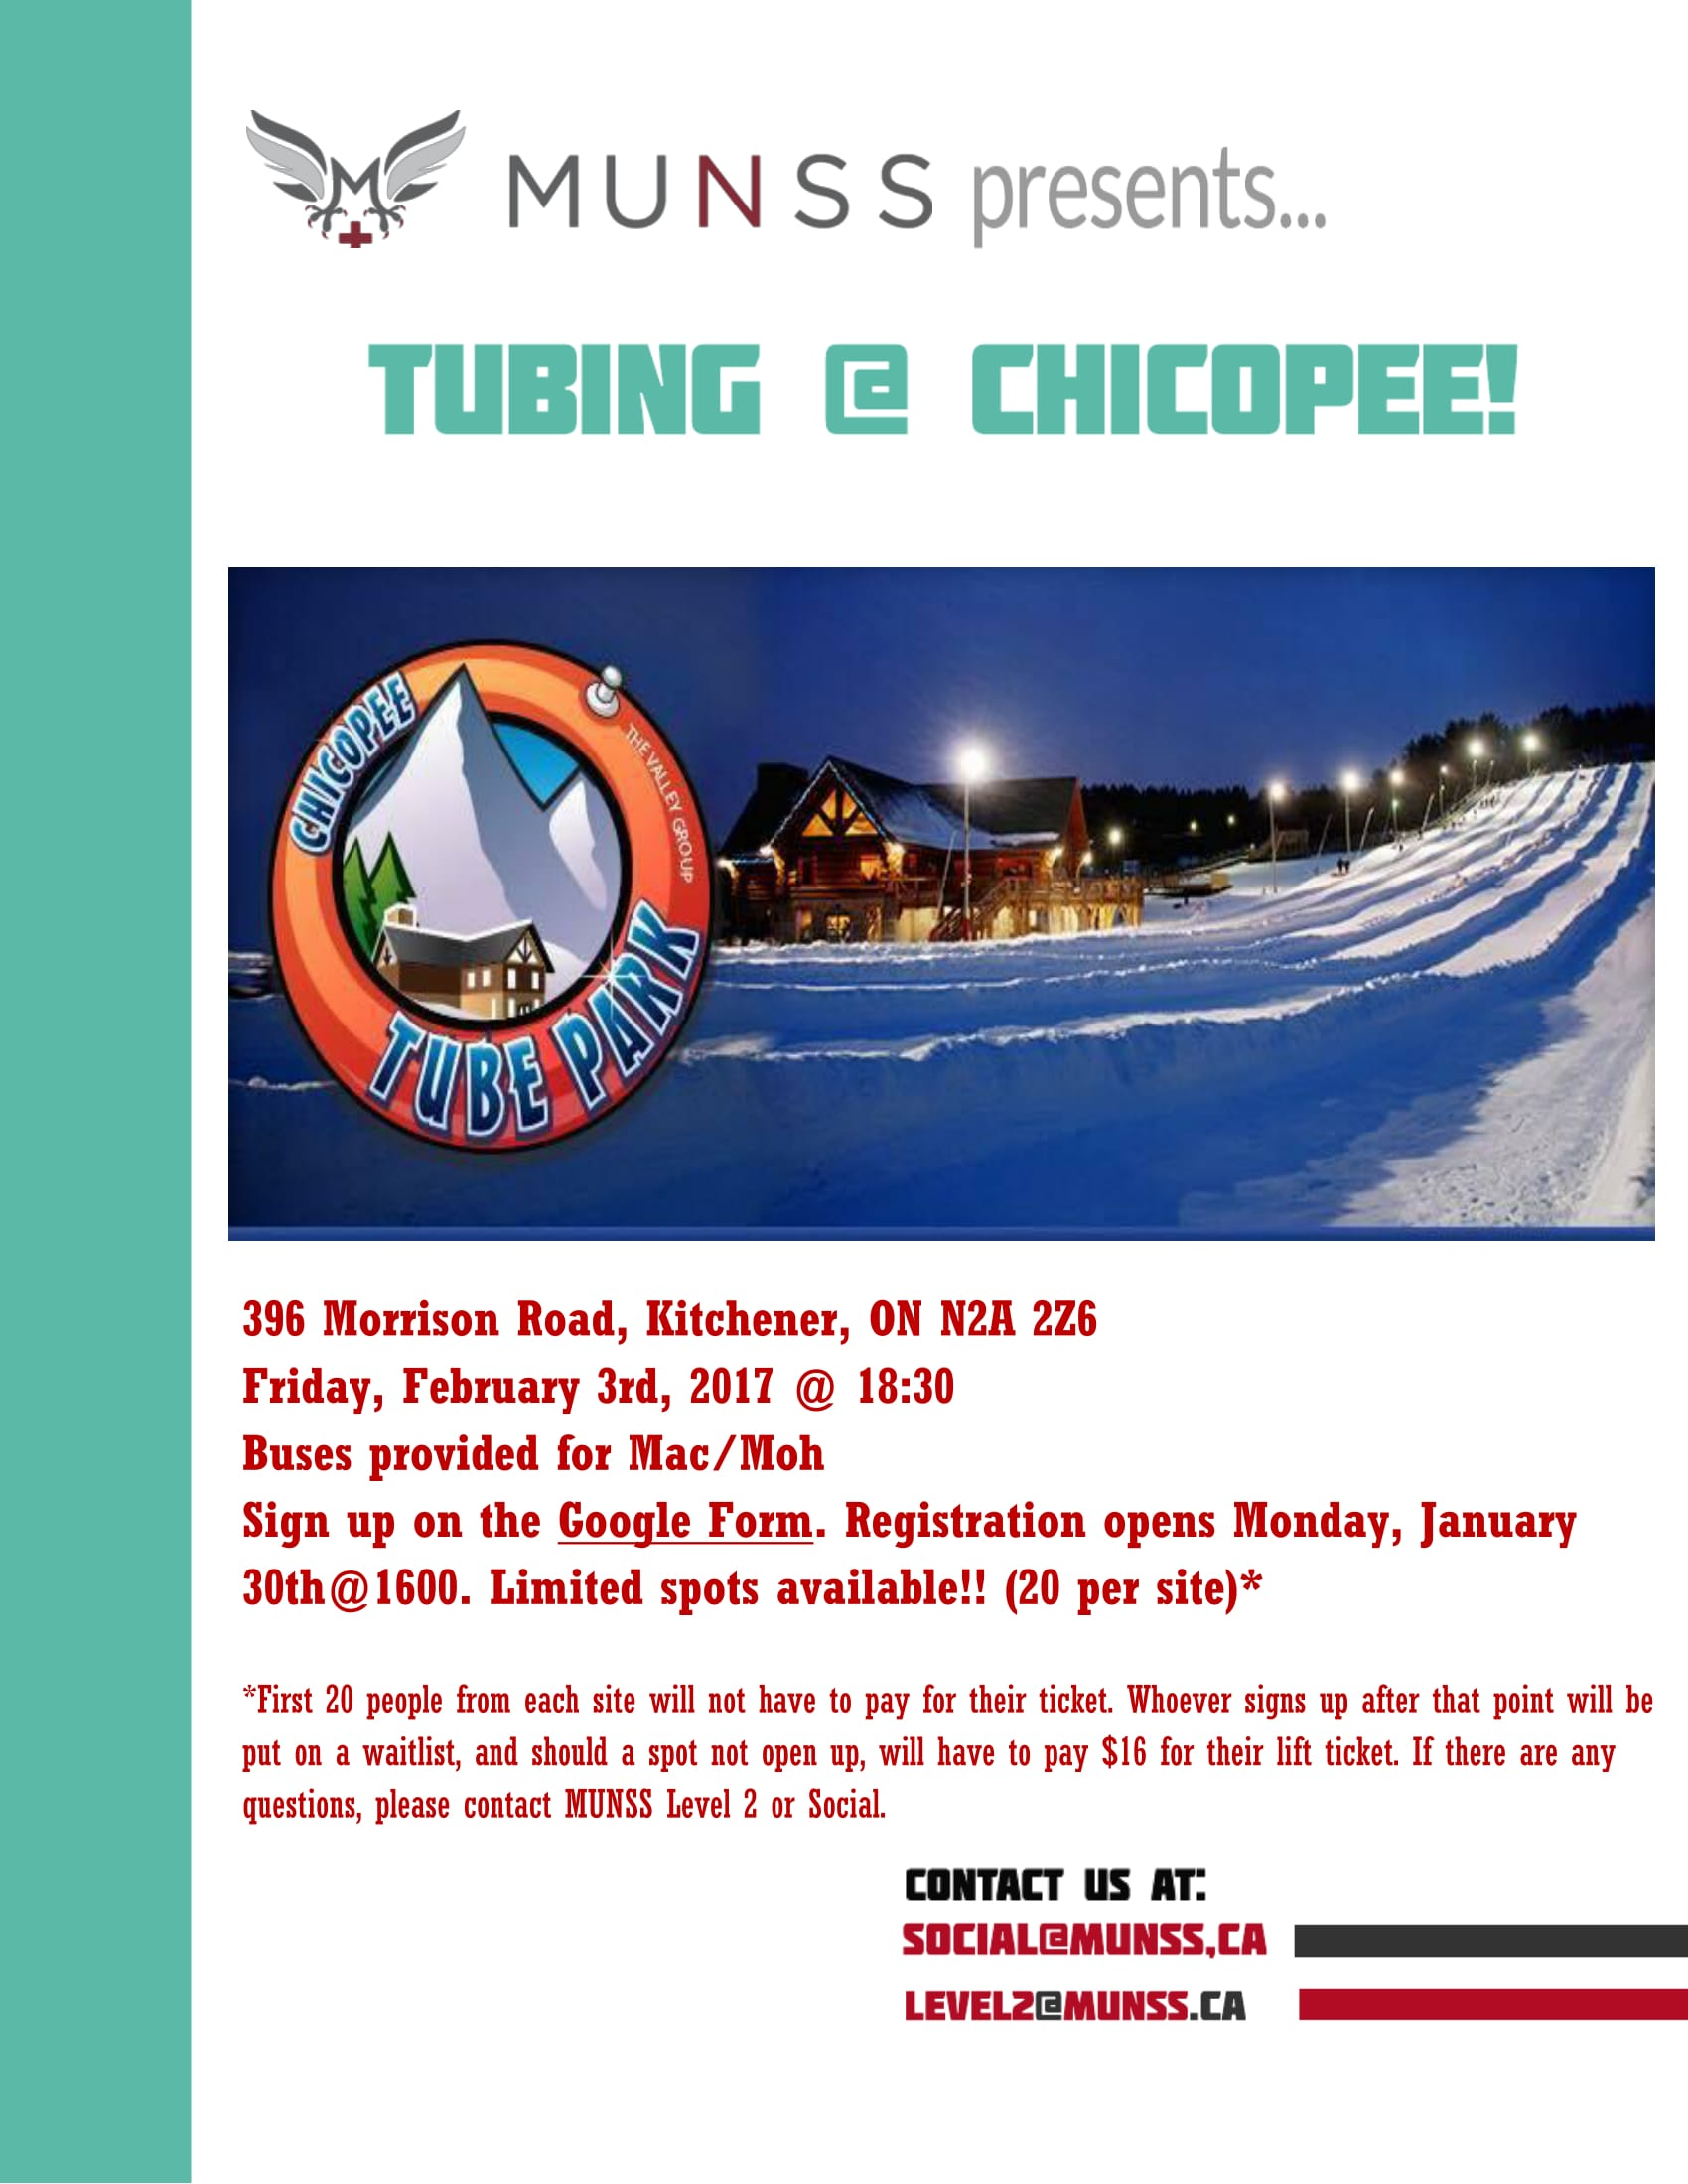 MUNSS-Tubing-Event (1)-1